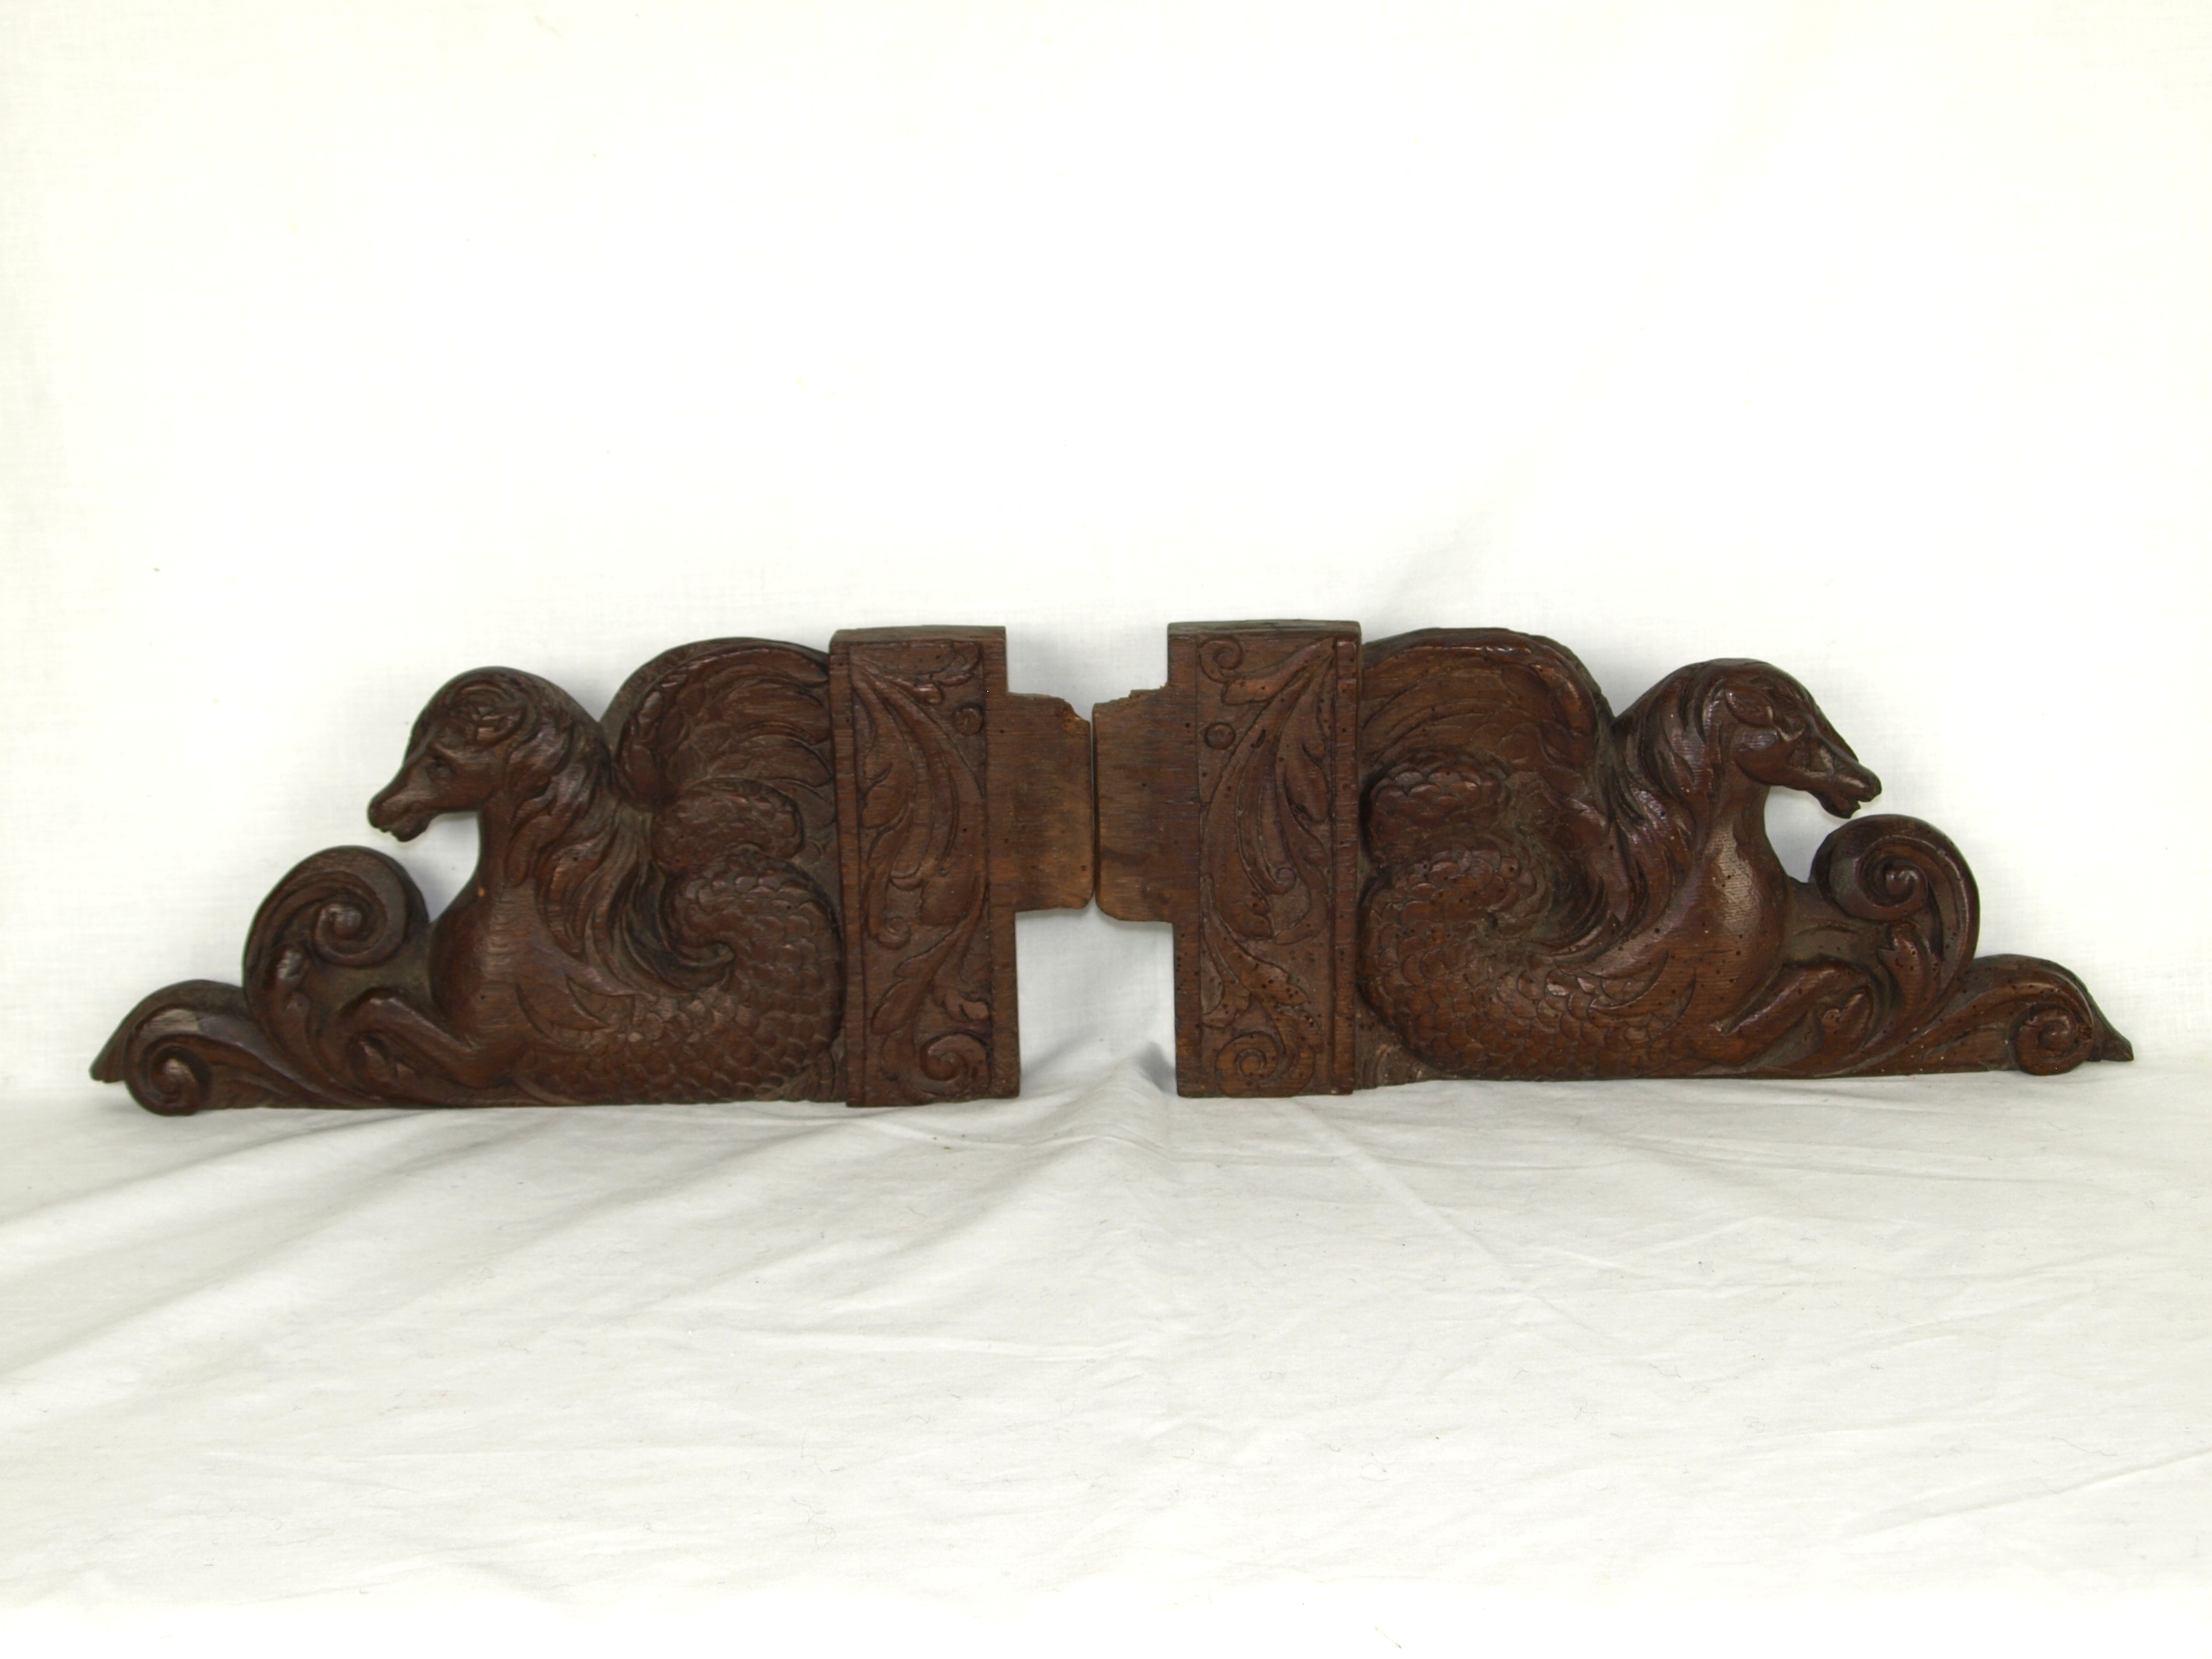 TESTER BED CARVINGS